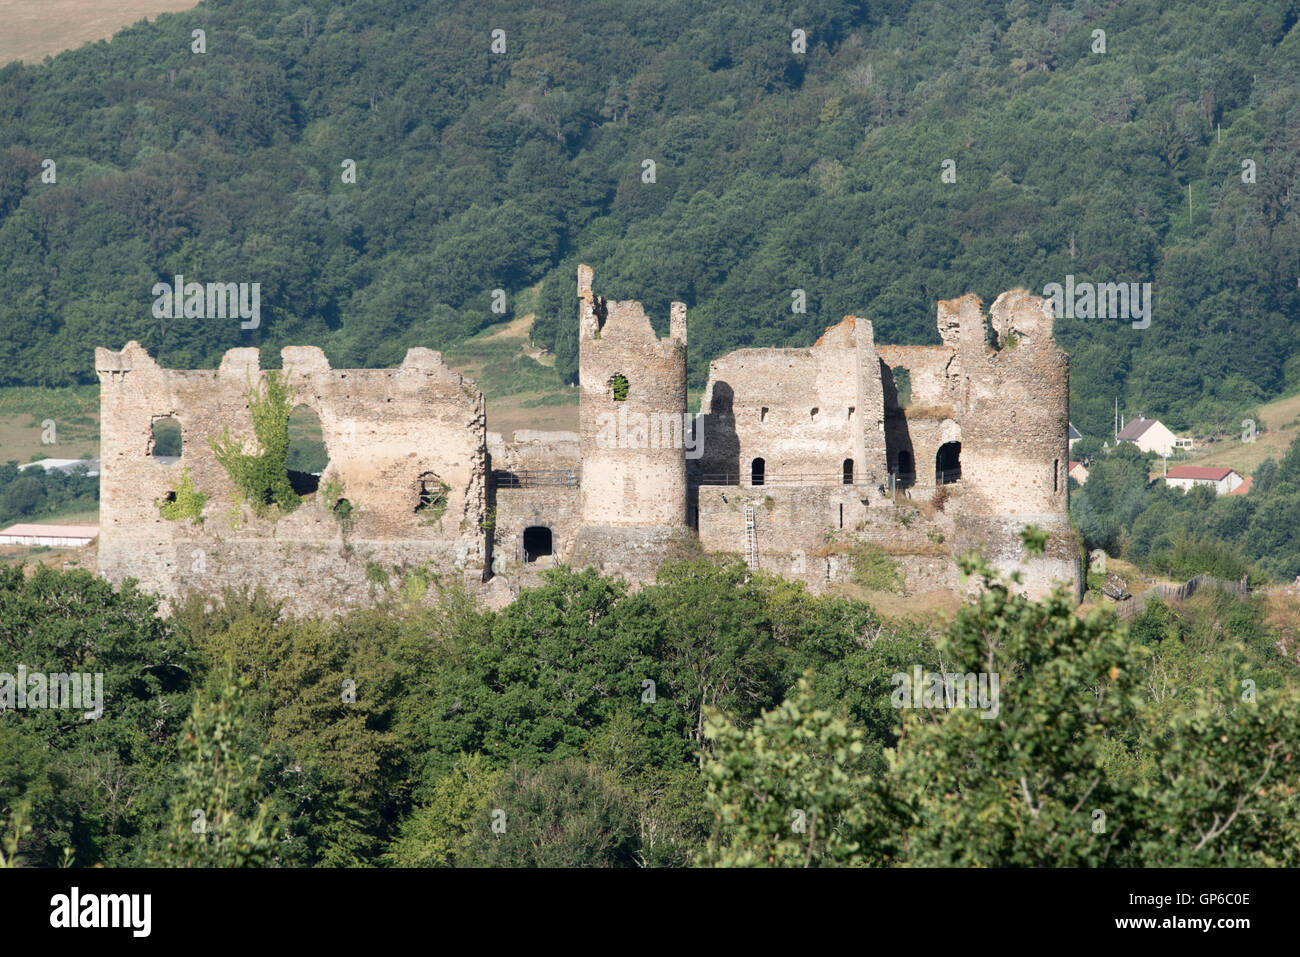 Chateau Rocher Sioule valley Auvergne France - Stock Image